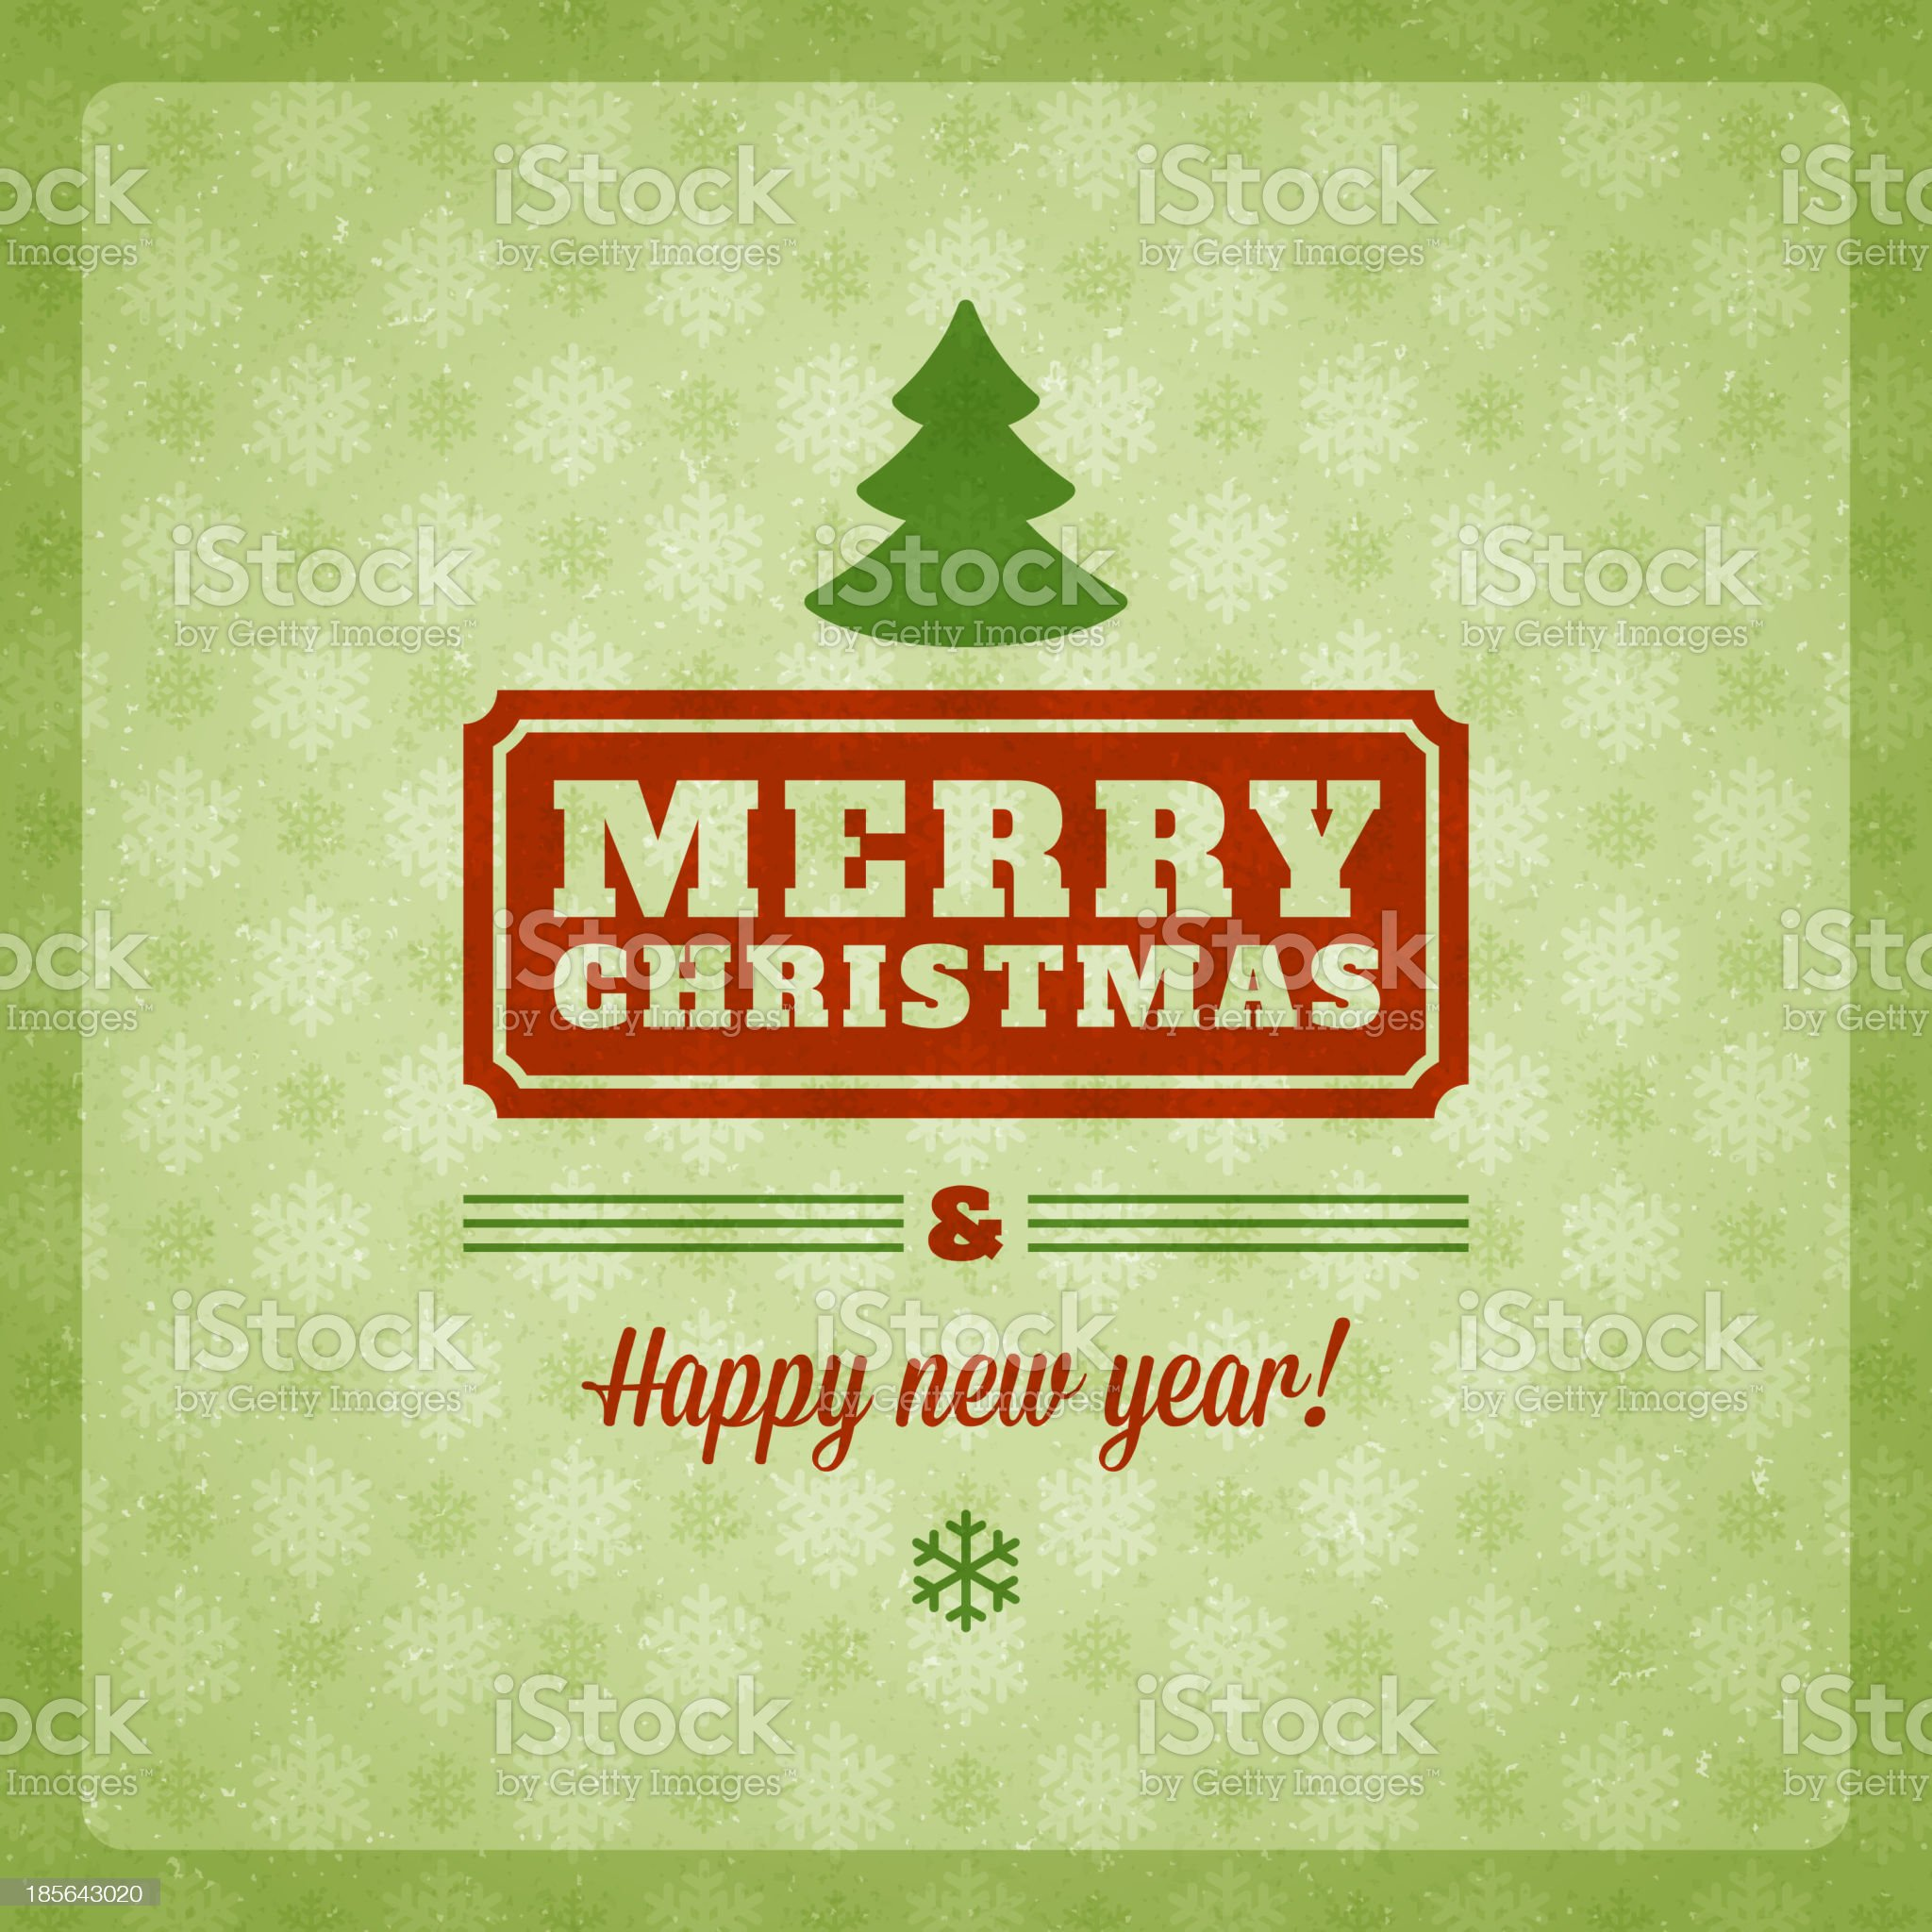 Christmas background vector image. royalty-free stock vector art